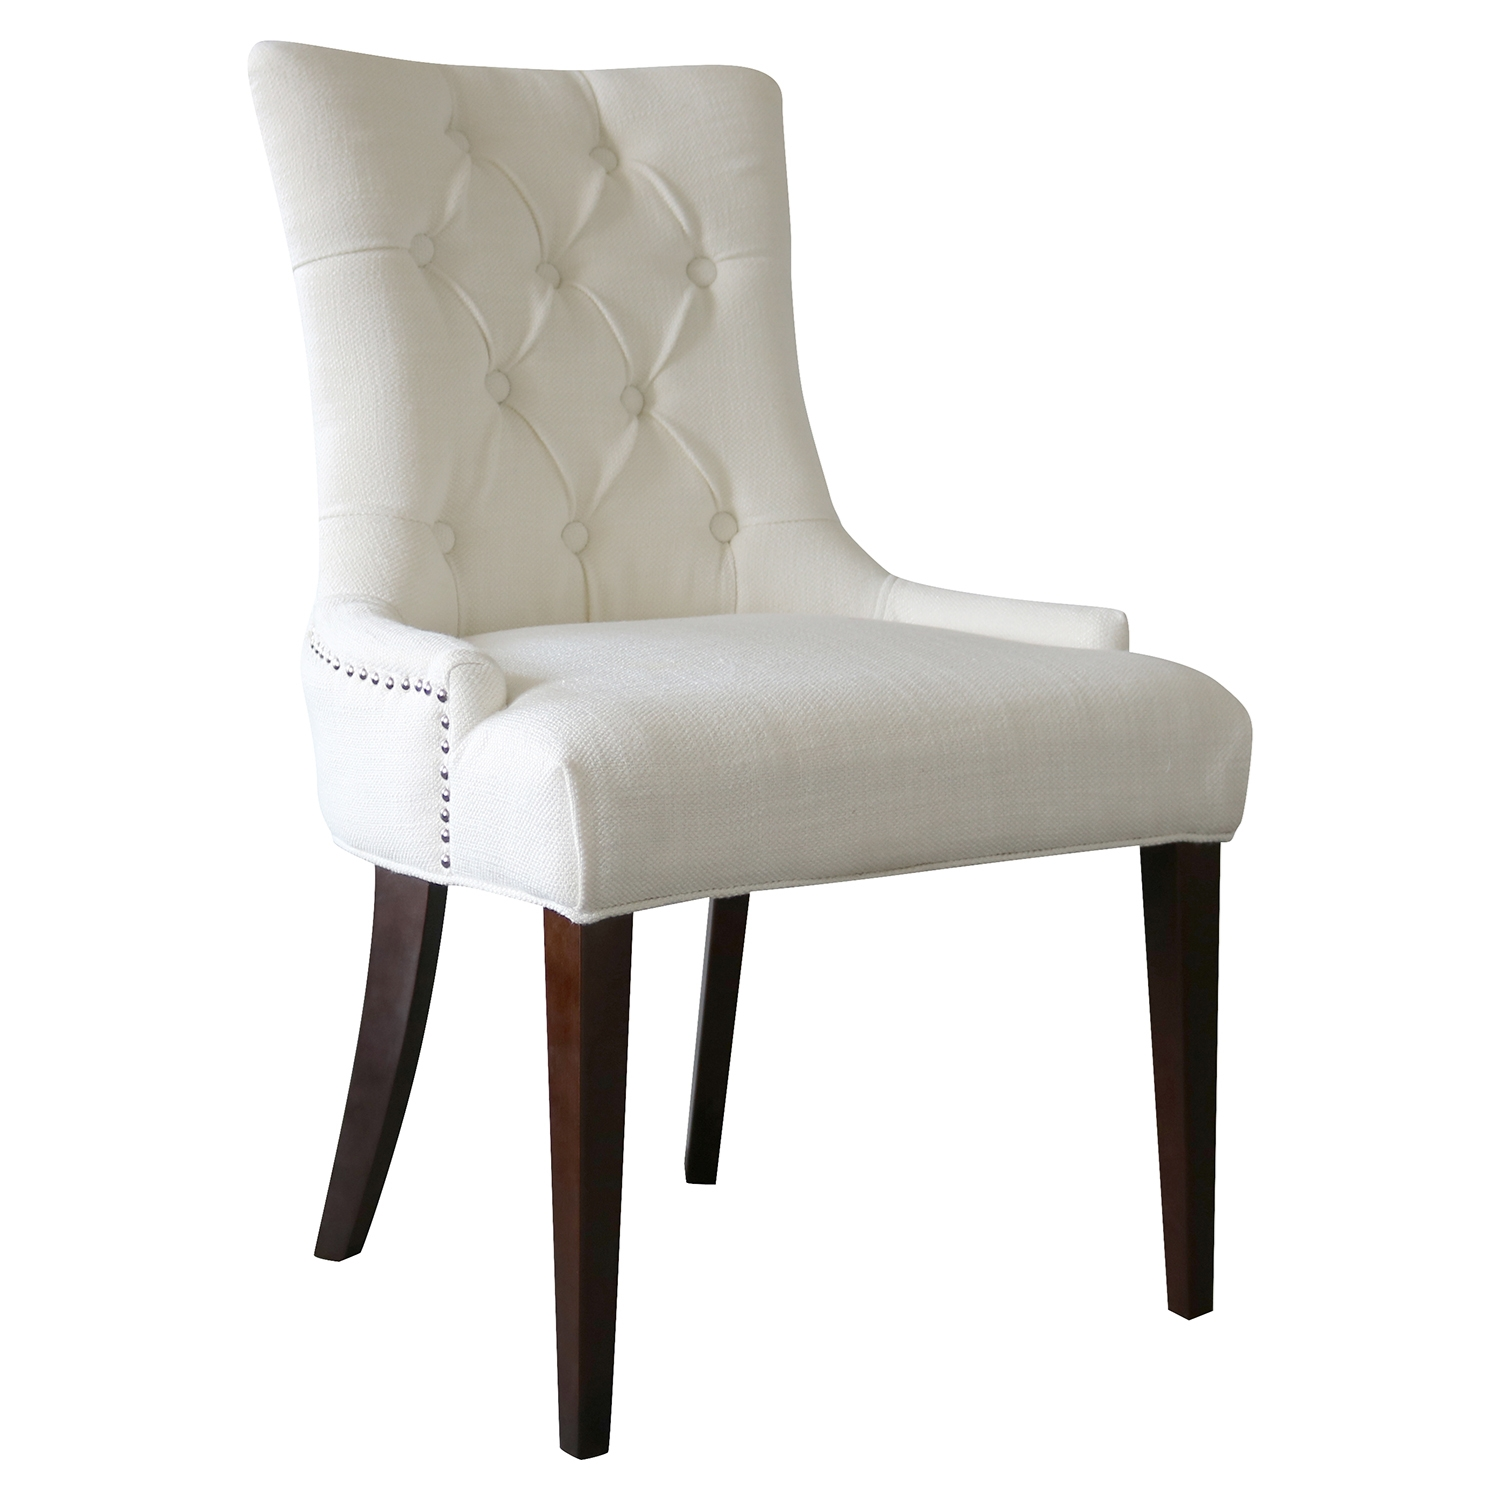 Madelyn Chair - Snow, Button Tufted